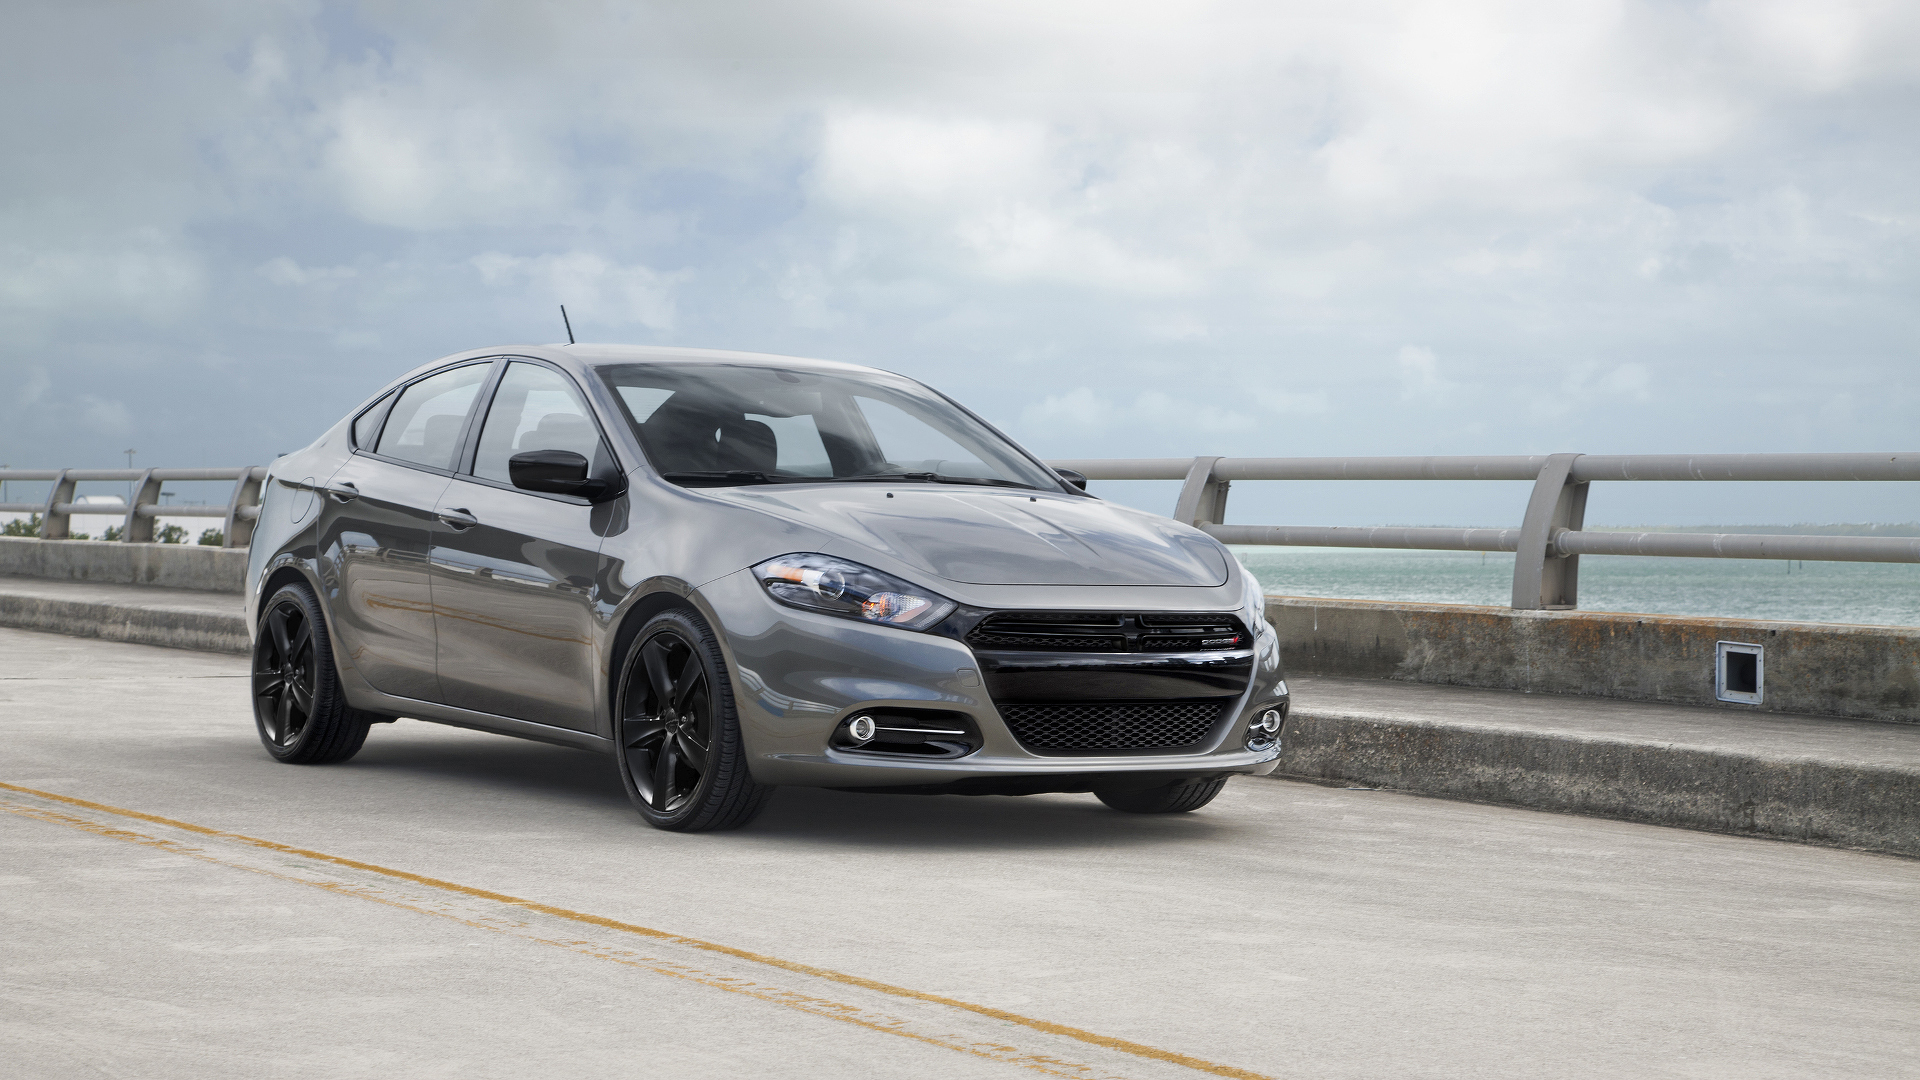 2016 dodge dart introduced it s 1 400 cheaper than the 2015 model year autoevolution. Black Bedroom Furniture Sets. Home Design Ideas